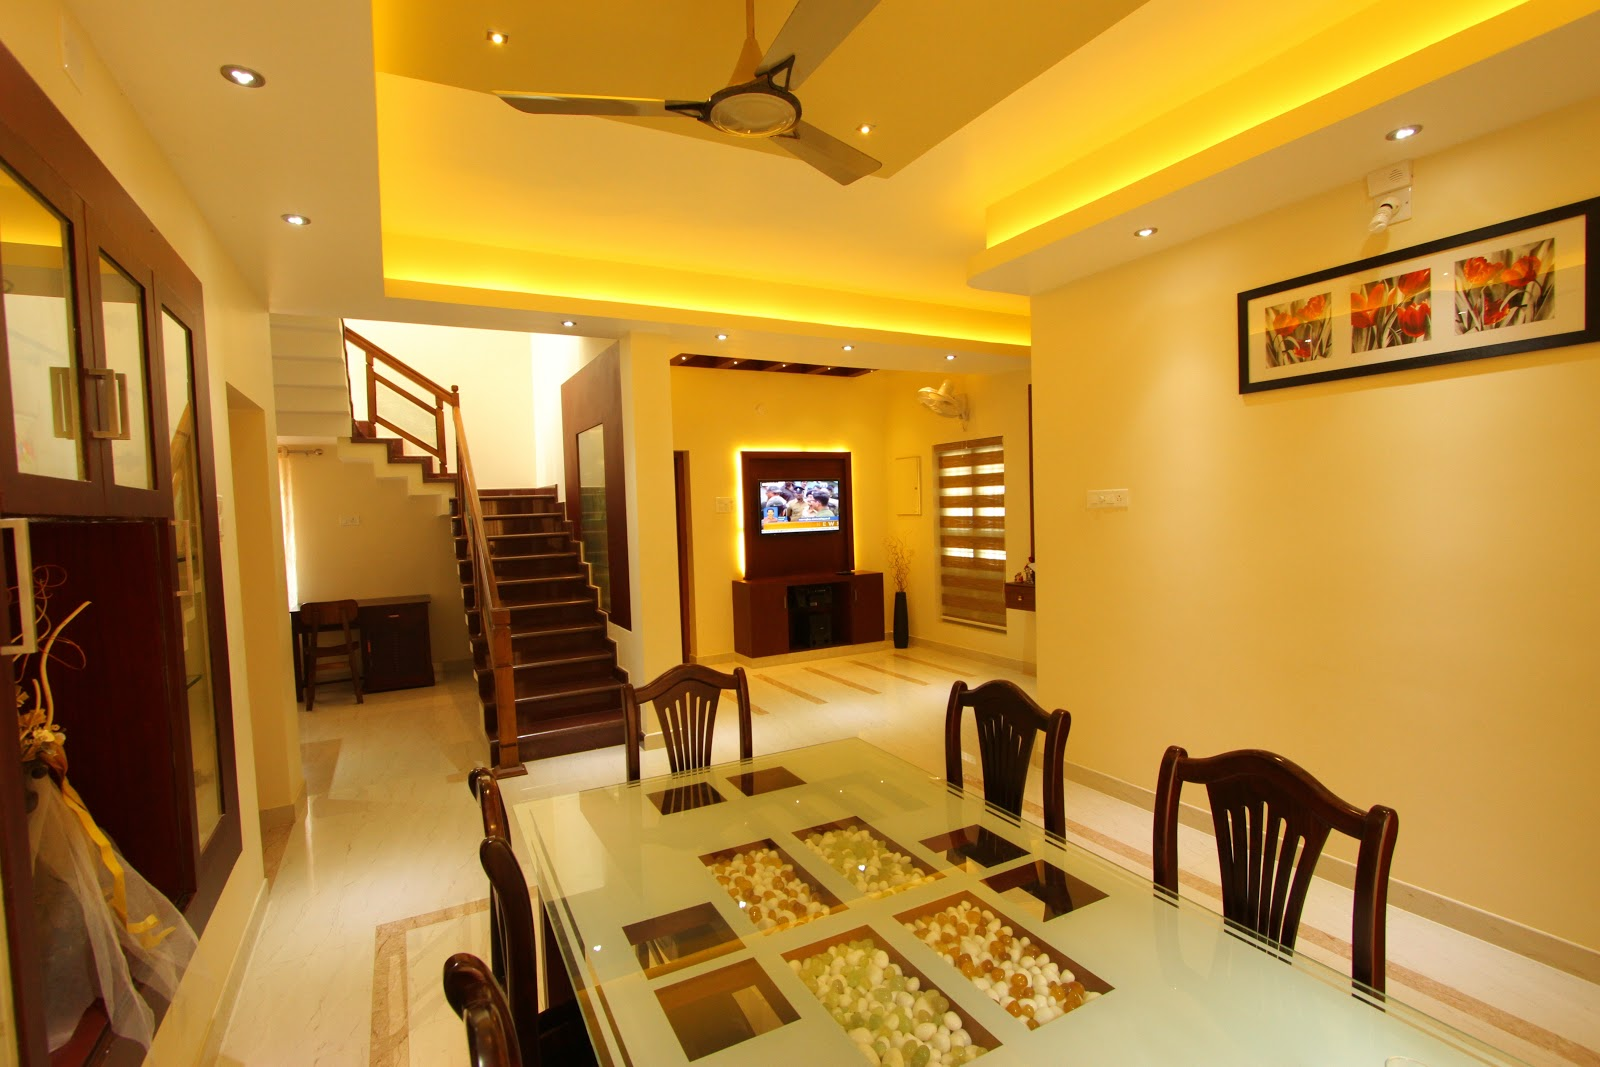 Shilpakala interiors award winning home interior design by shilpakala interiors - Interior designs ...